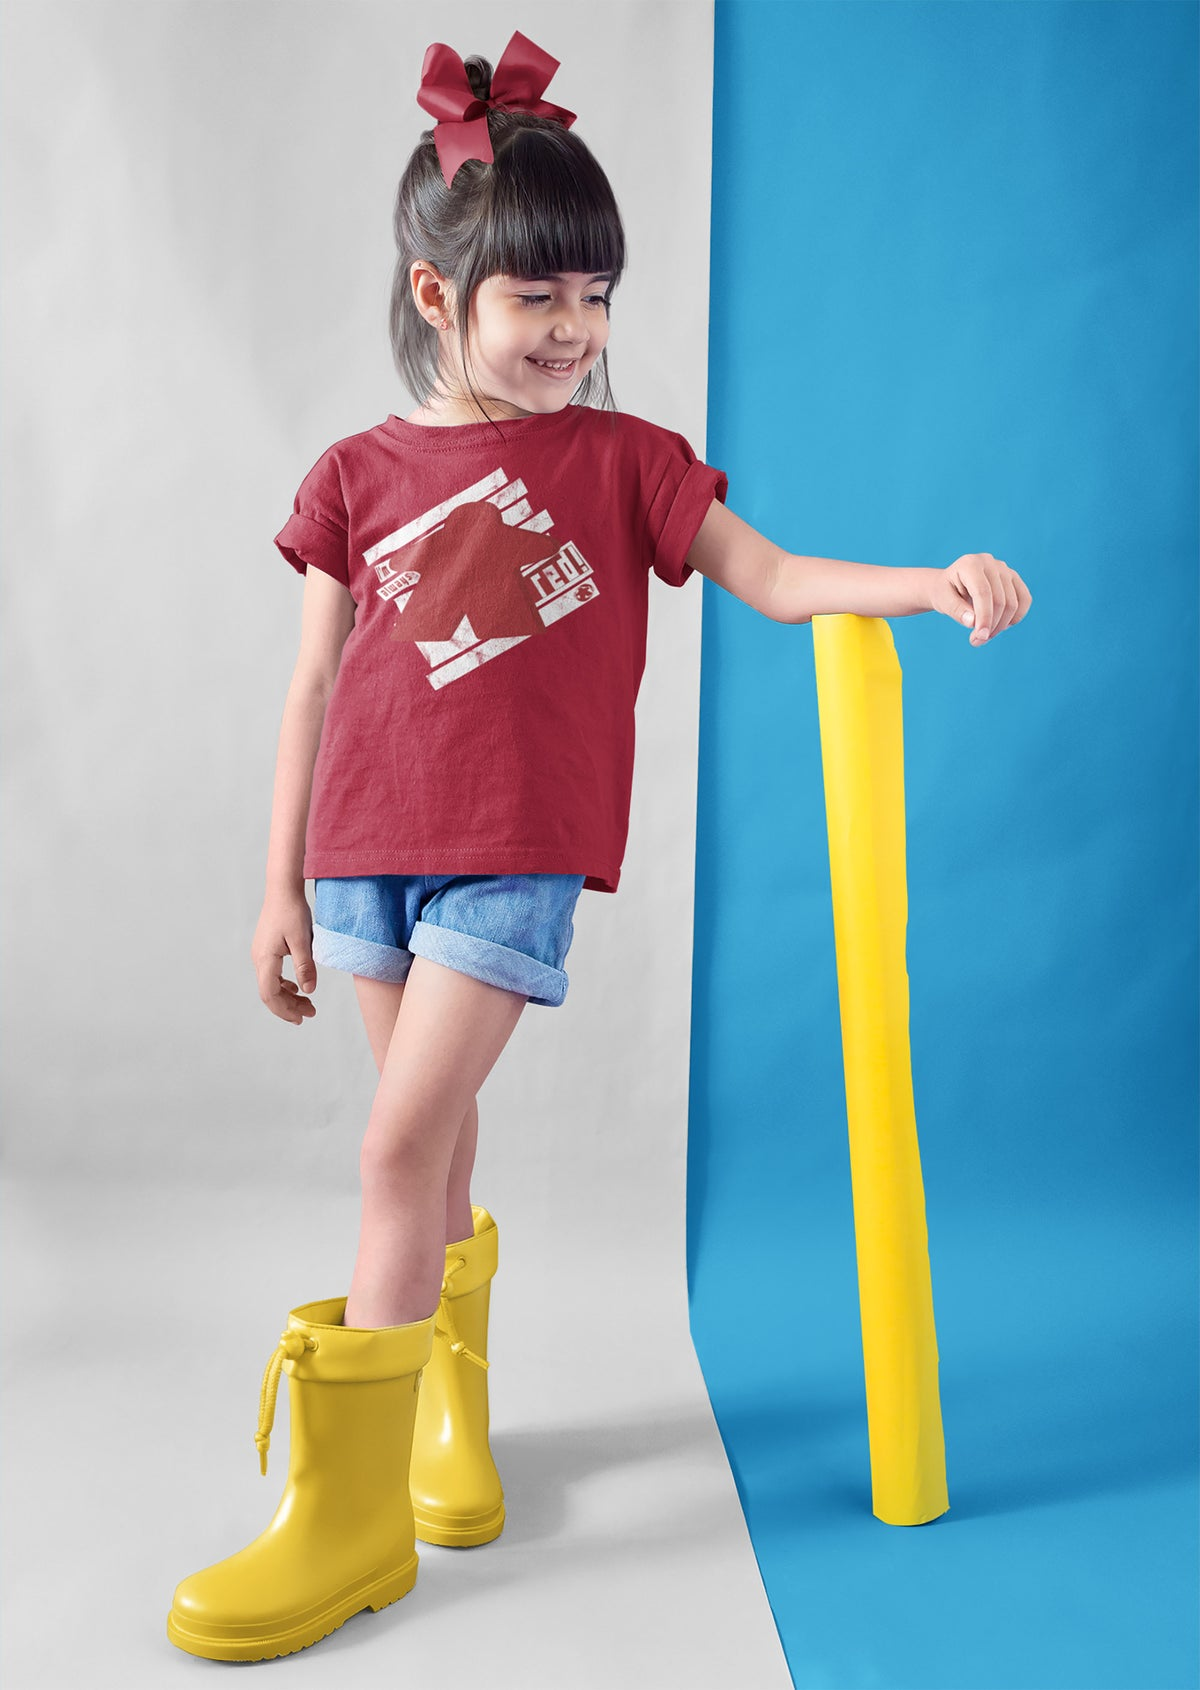 I'm Always Red Meeple Board Game T-Shirt Action Shot Girl's